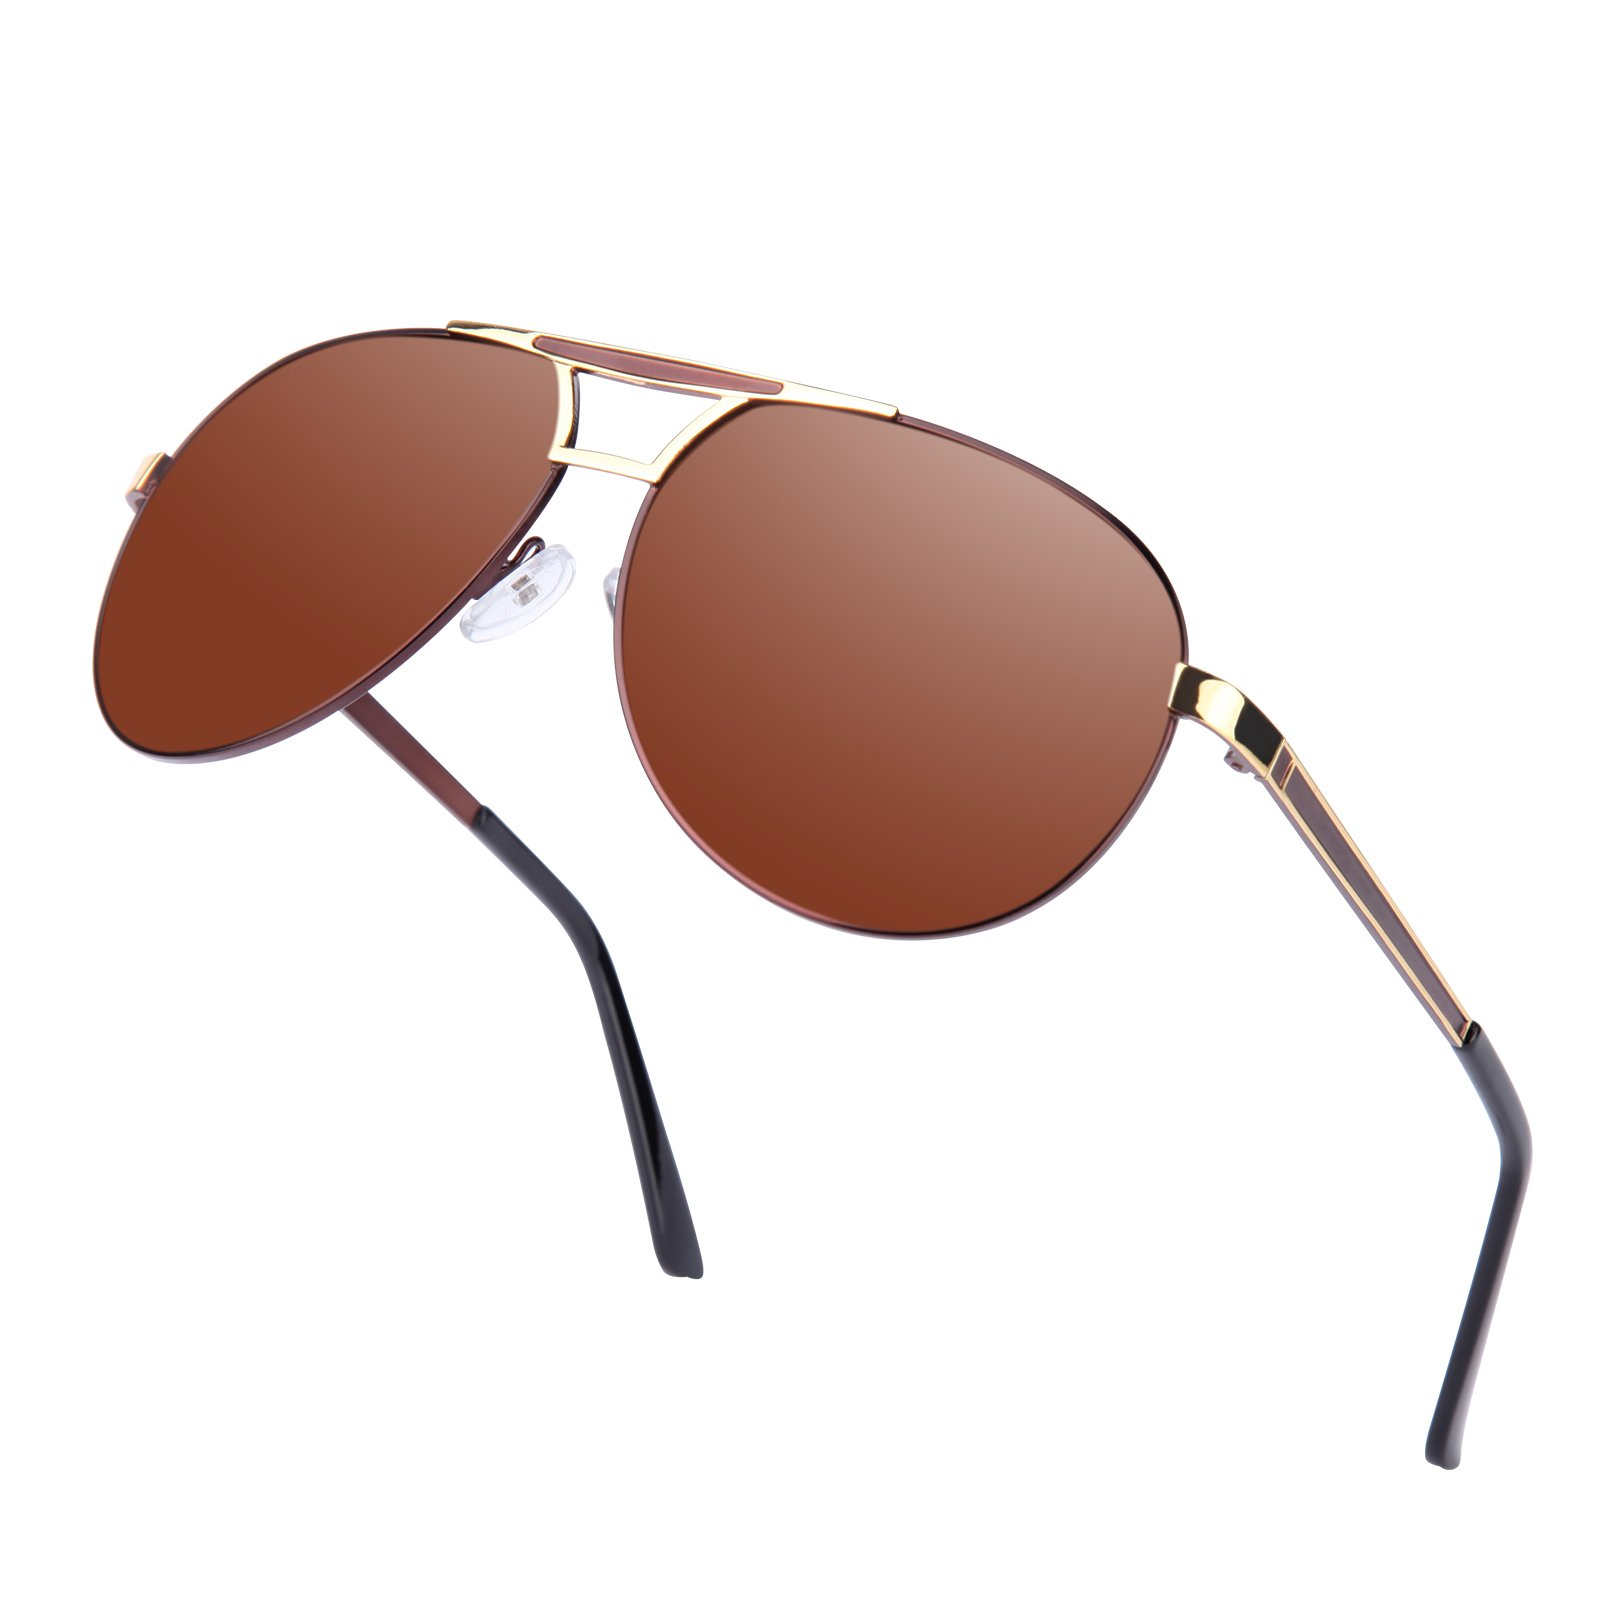 Men Aviator Sunglasses Women Vintage Polarized Pilot Sun Glasses UV 400 Protection by Kennifer (Brown)